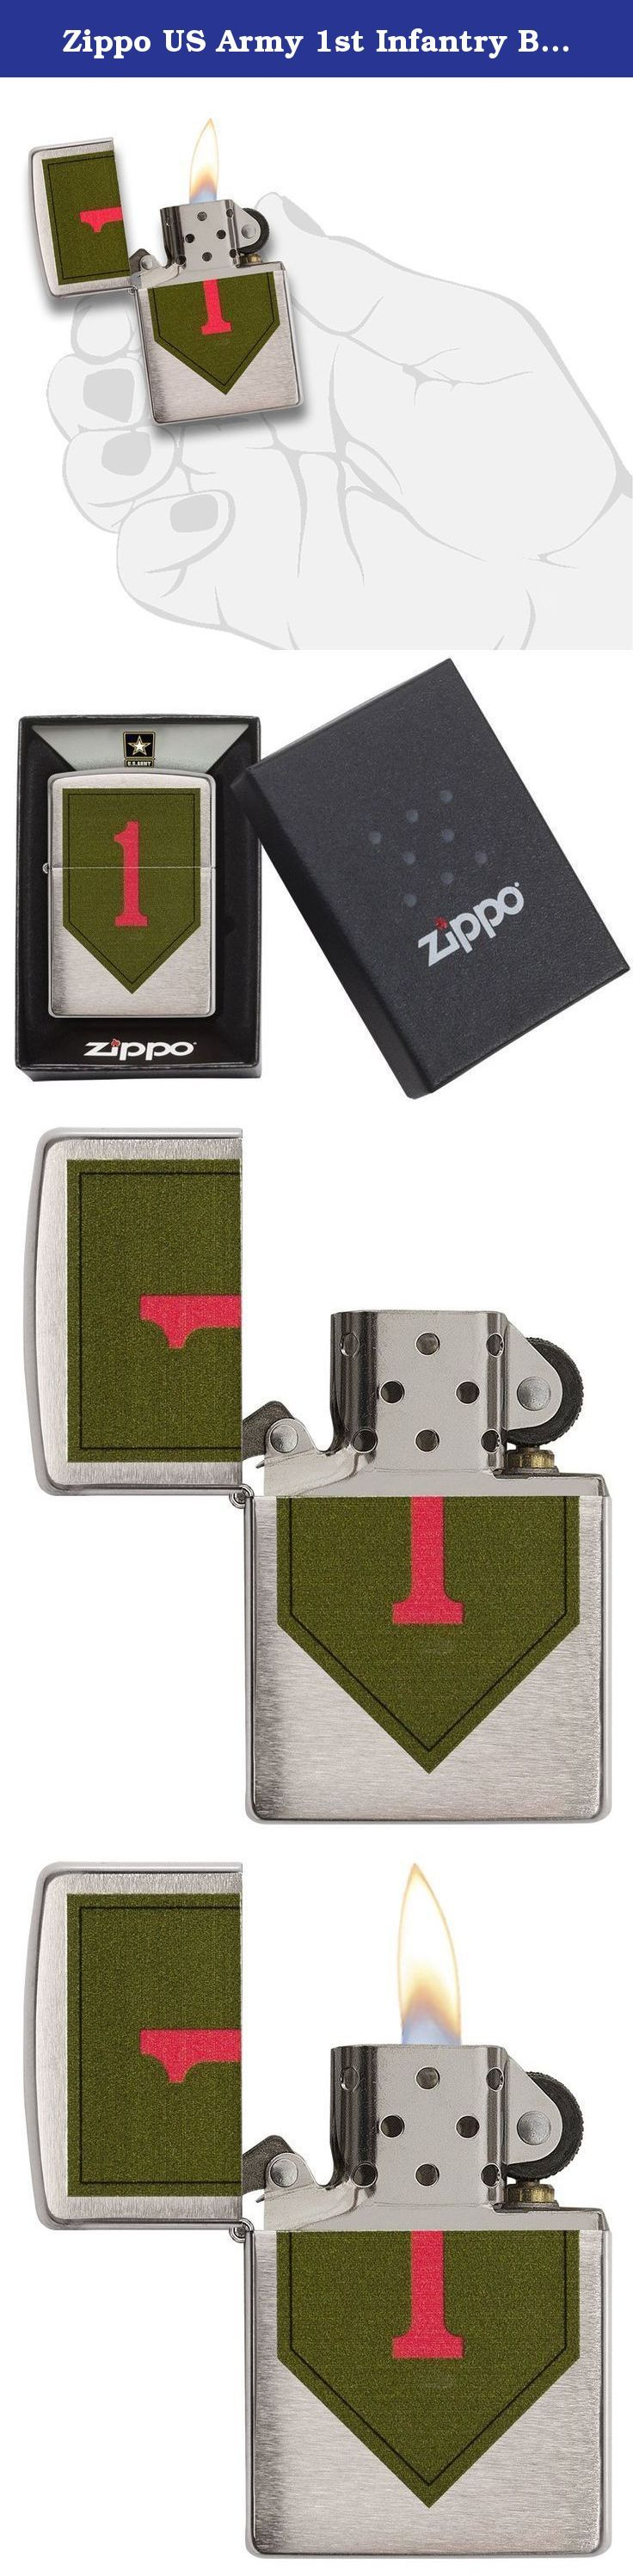 Zippo US Army 1st Infantry Brushed Chrome Pocket Lighter. This lighter features United States army 1St Infantry division. This brushed chrome lighter features the shoulder sleeve insignia which represents the oldest continuously serving division in the army. Comes packaged in an environmentally friendly gift box. For optimal performance, use with Zippo premium lighter fluid.